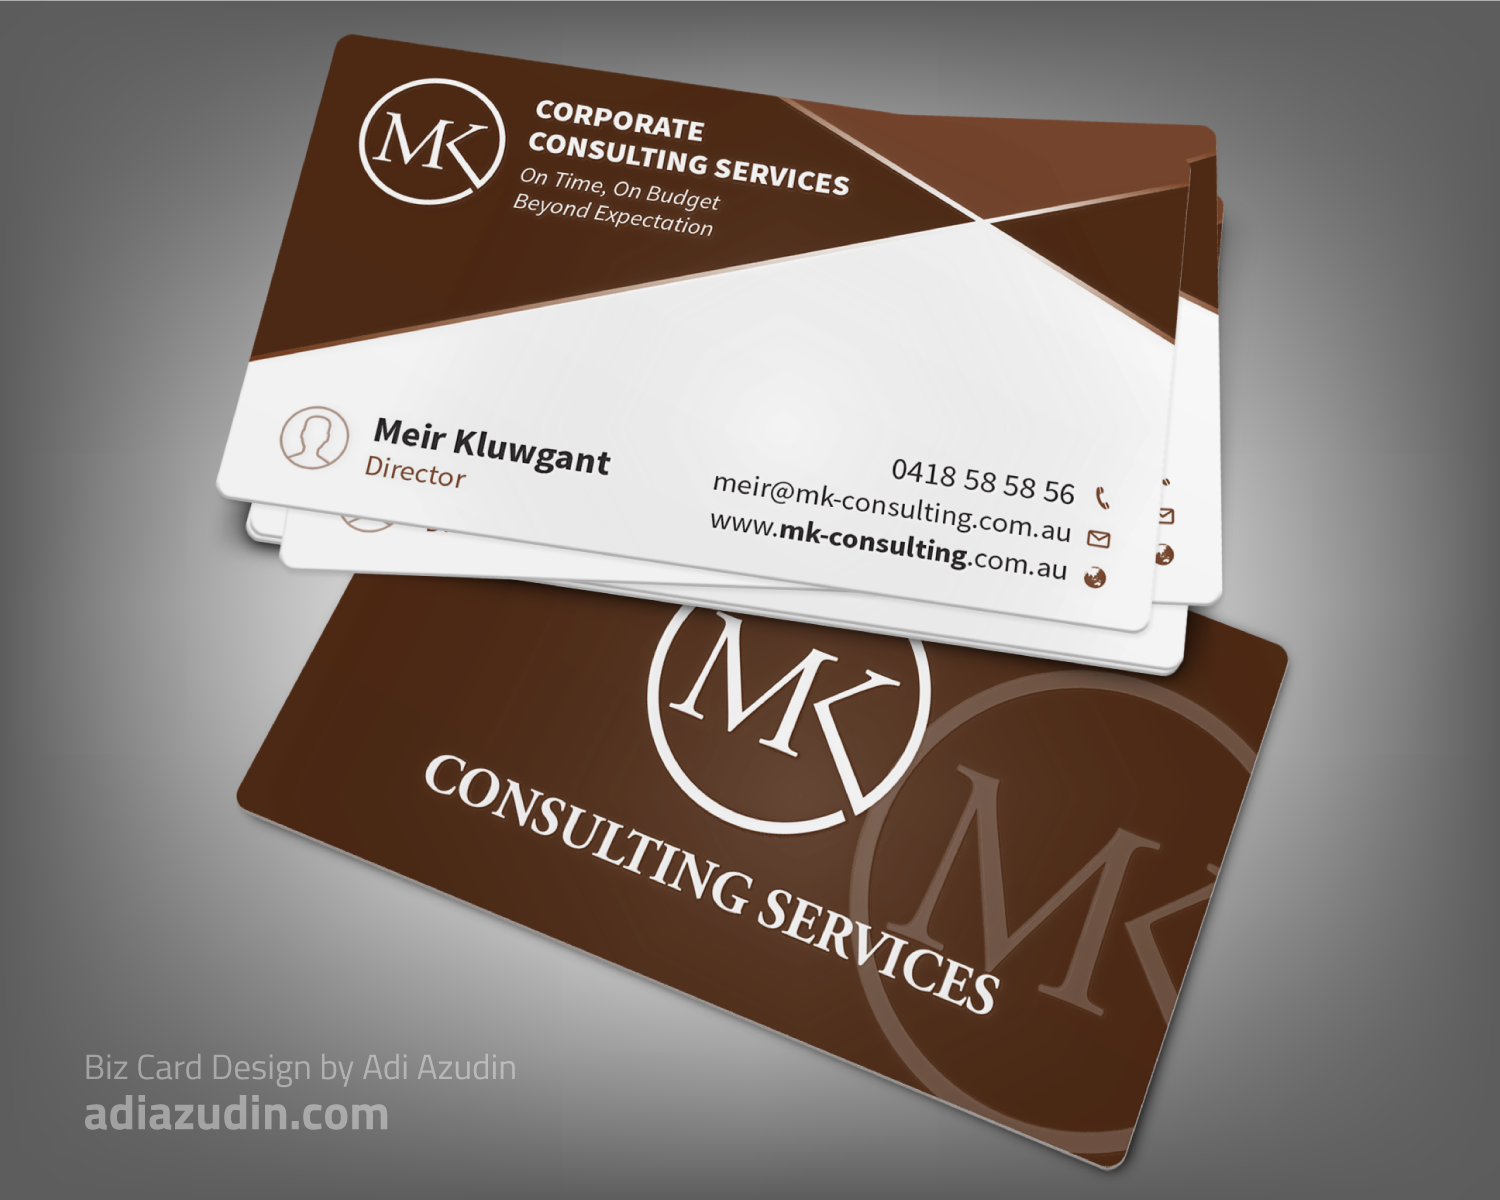 Serious professional consulting business card design for msk business card design by adiazudin for msk enterprises pl design 12401002 reheart Gallery